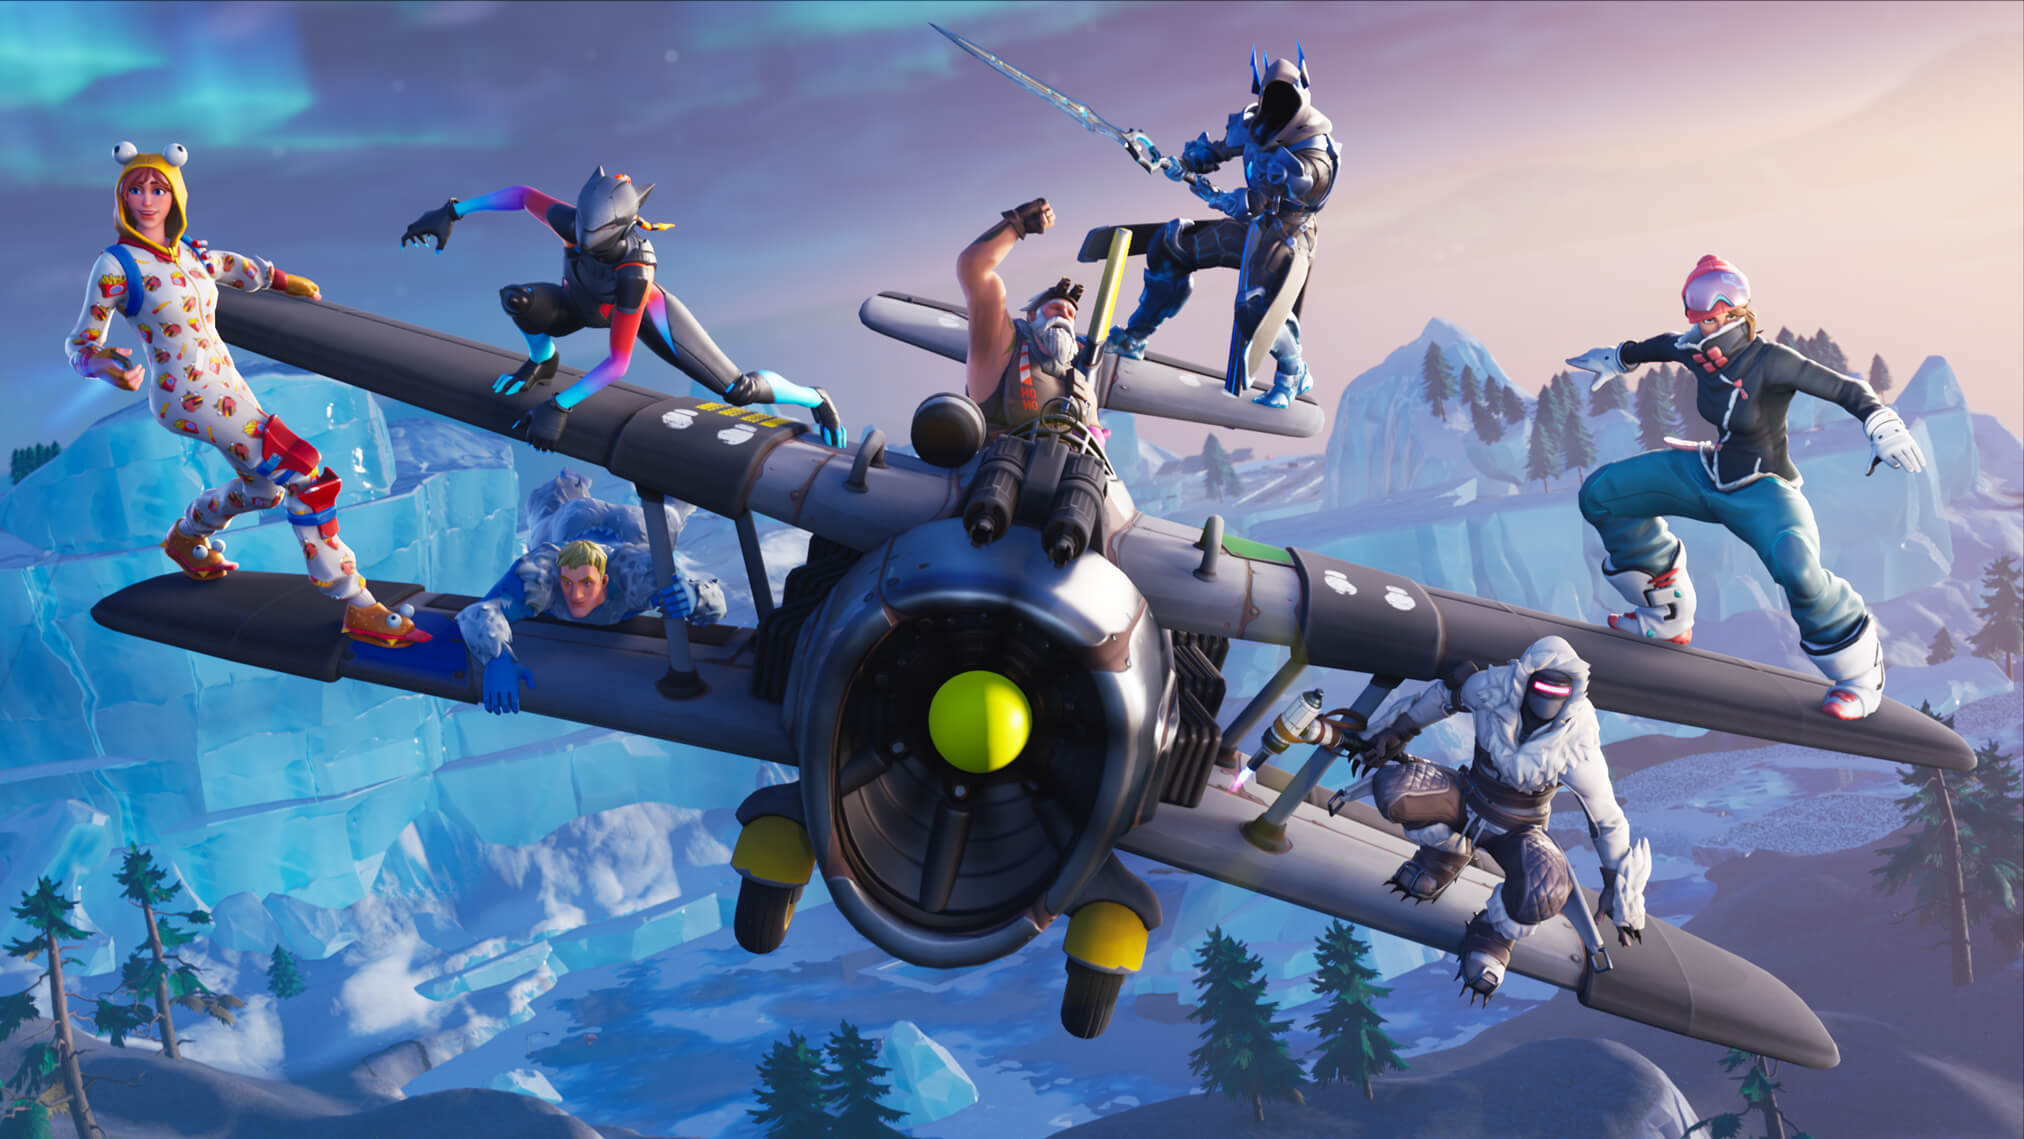 Fortnite finally allows players to merge their accounts following that whole PS4 cross-play debacle screenshot